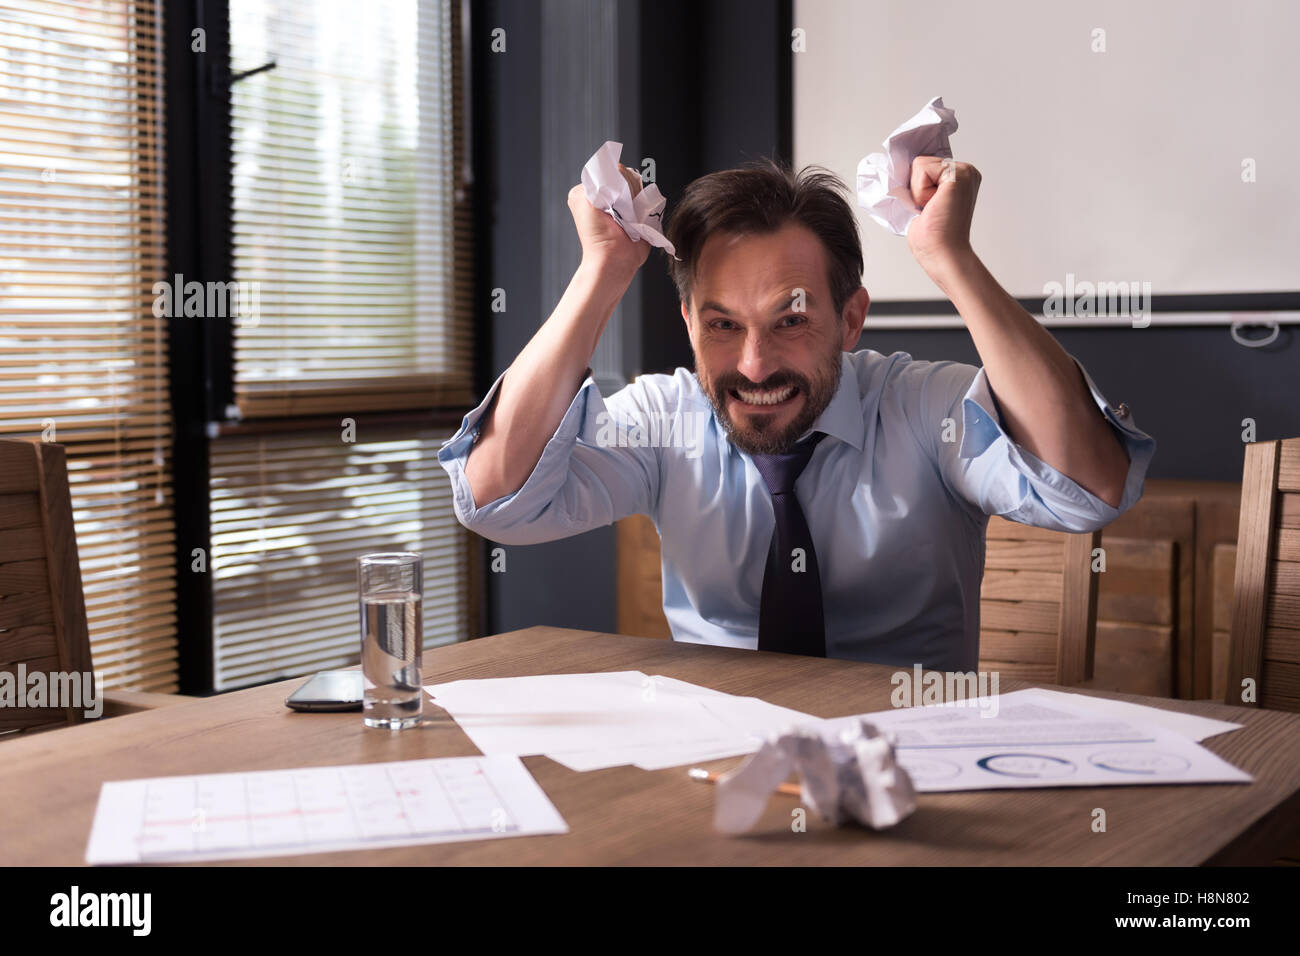 Angry hysterical man having a nervous breakdown - Stock Image